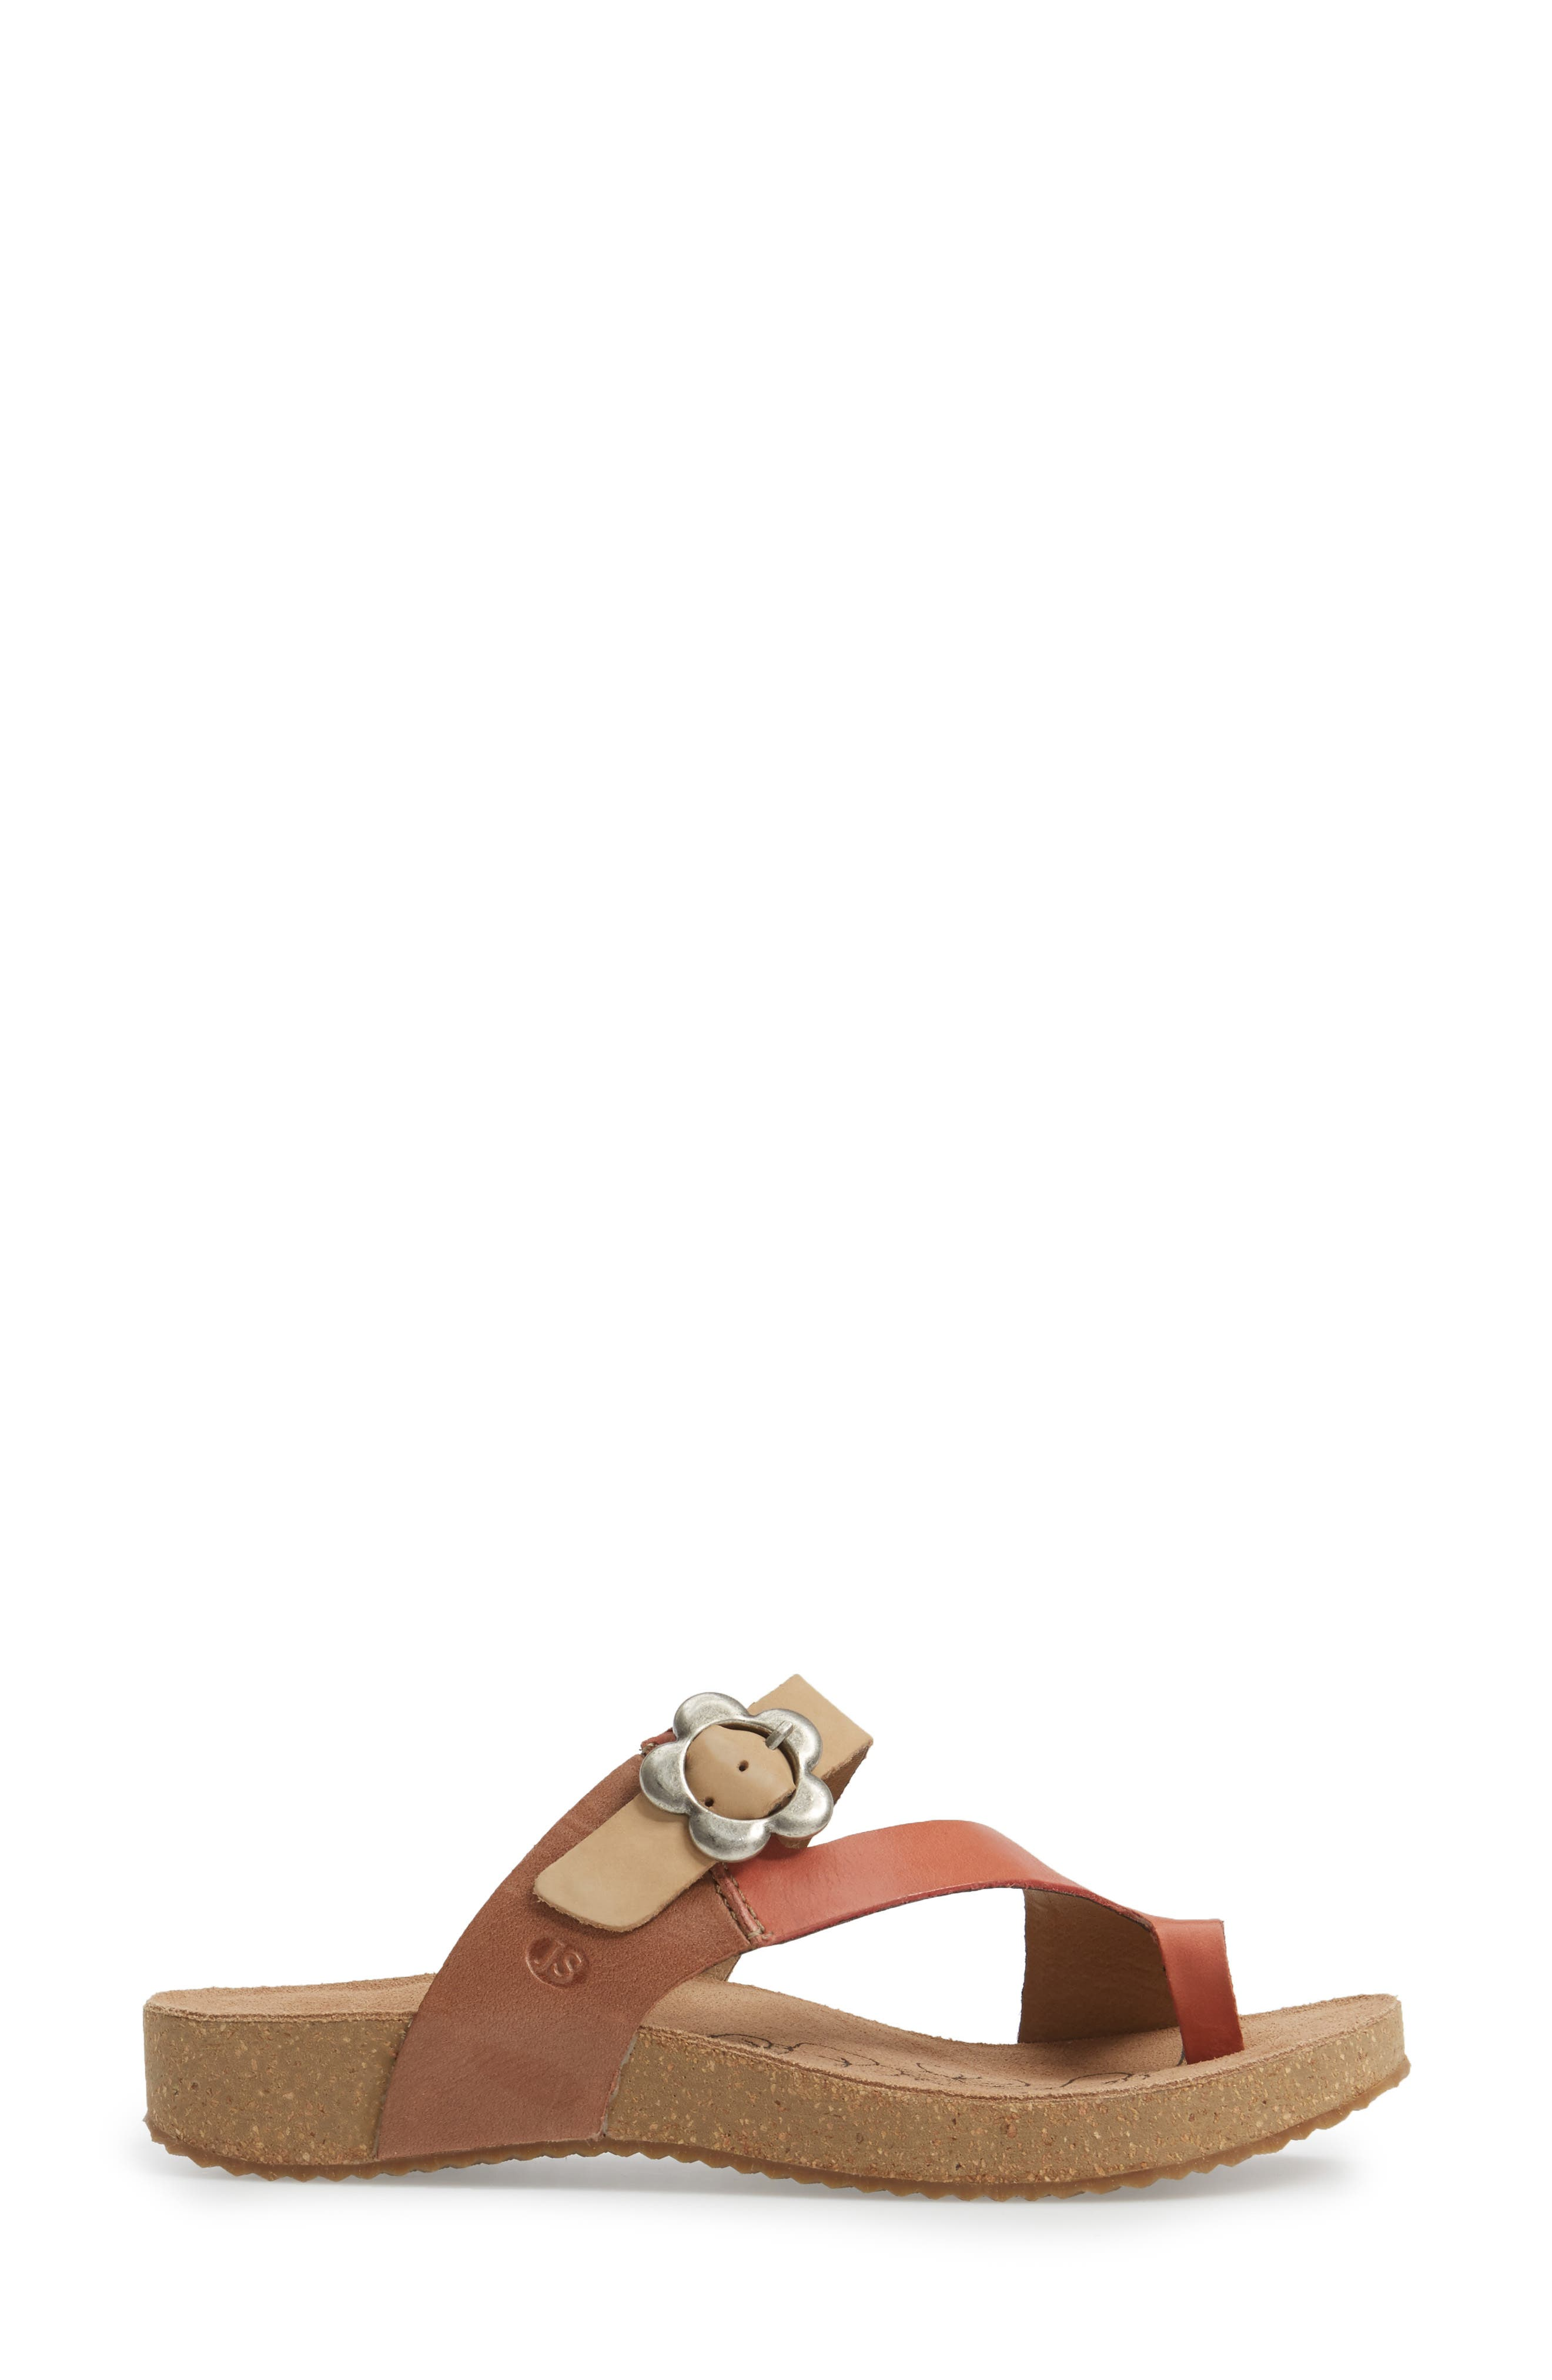 Tonga 23 Sandal,                             Alternate thumbnail 3, color,                             KORALLE MULTI LEATHER